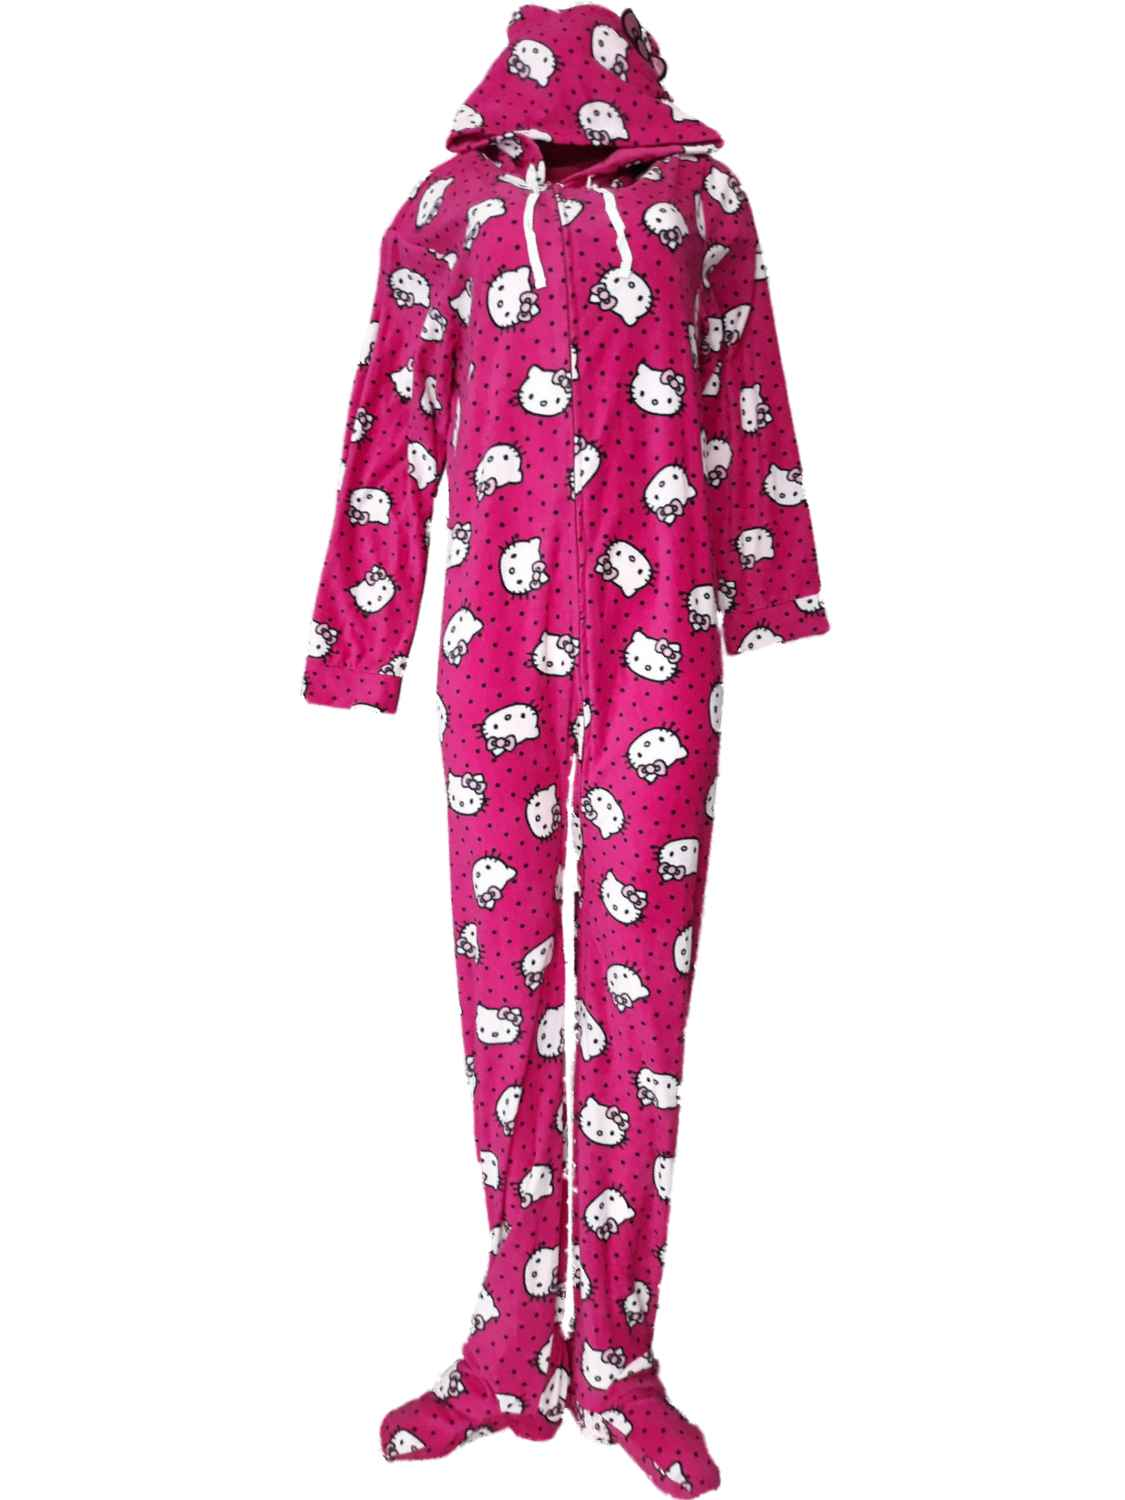 db0eadb16 Hello Kitty Women Hello Kitty Cat Kitten Polka Dot Union Suit Blanket  Sleeper Pajama X-